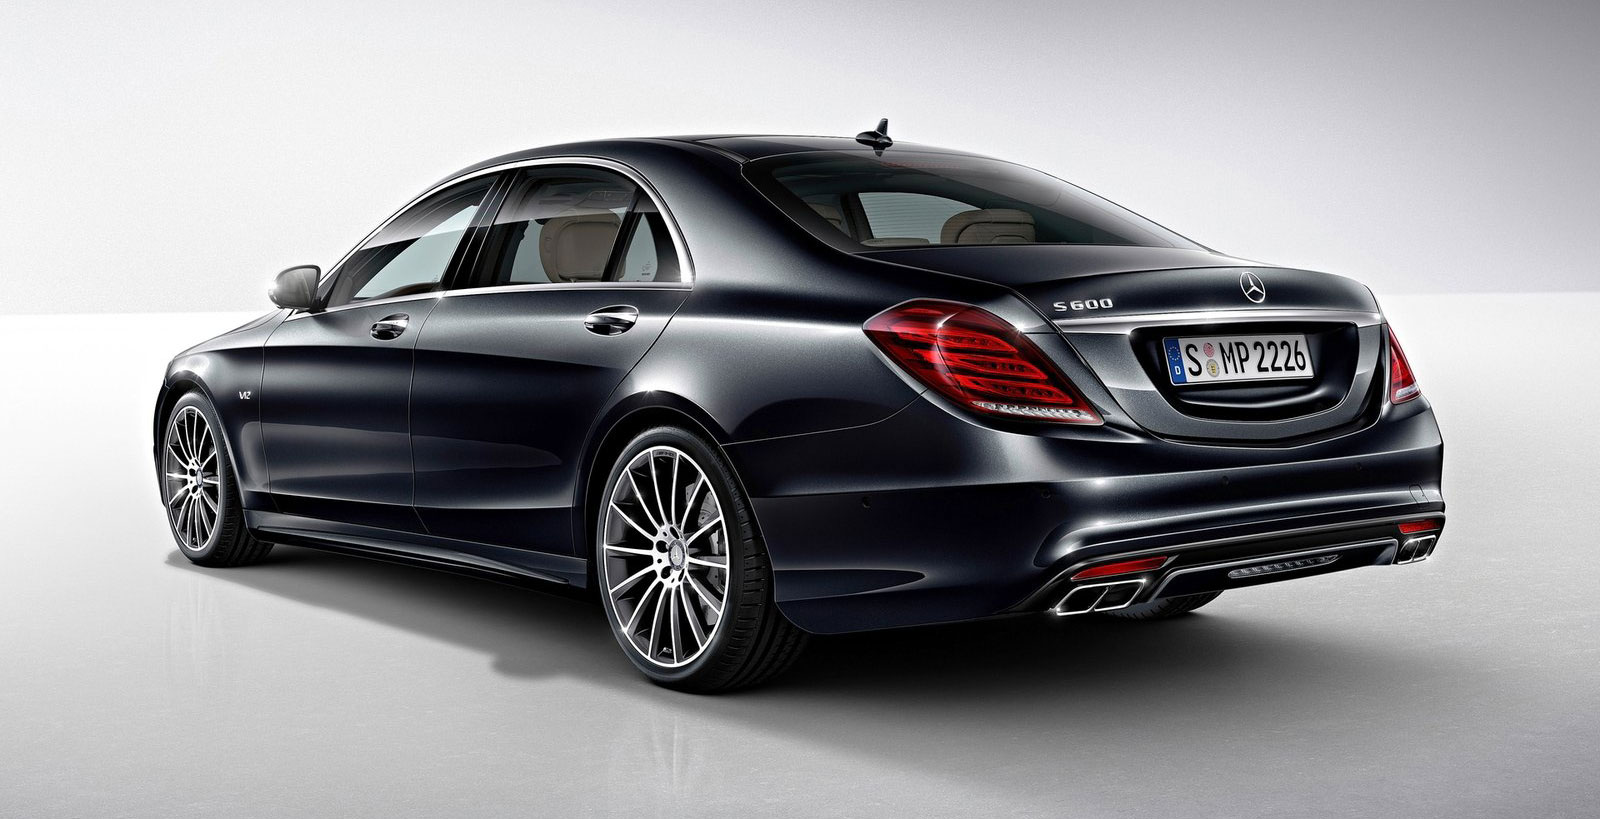 Mercedes benz s600 debuts in detroit the v12 w222 for The mercedes benz